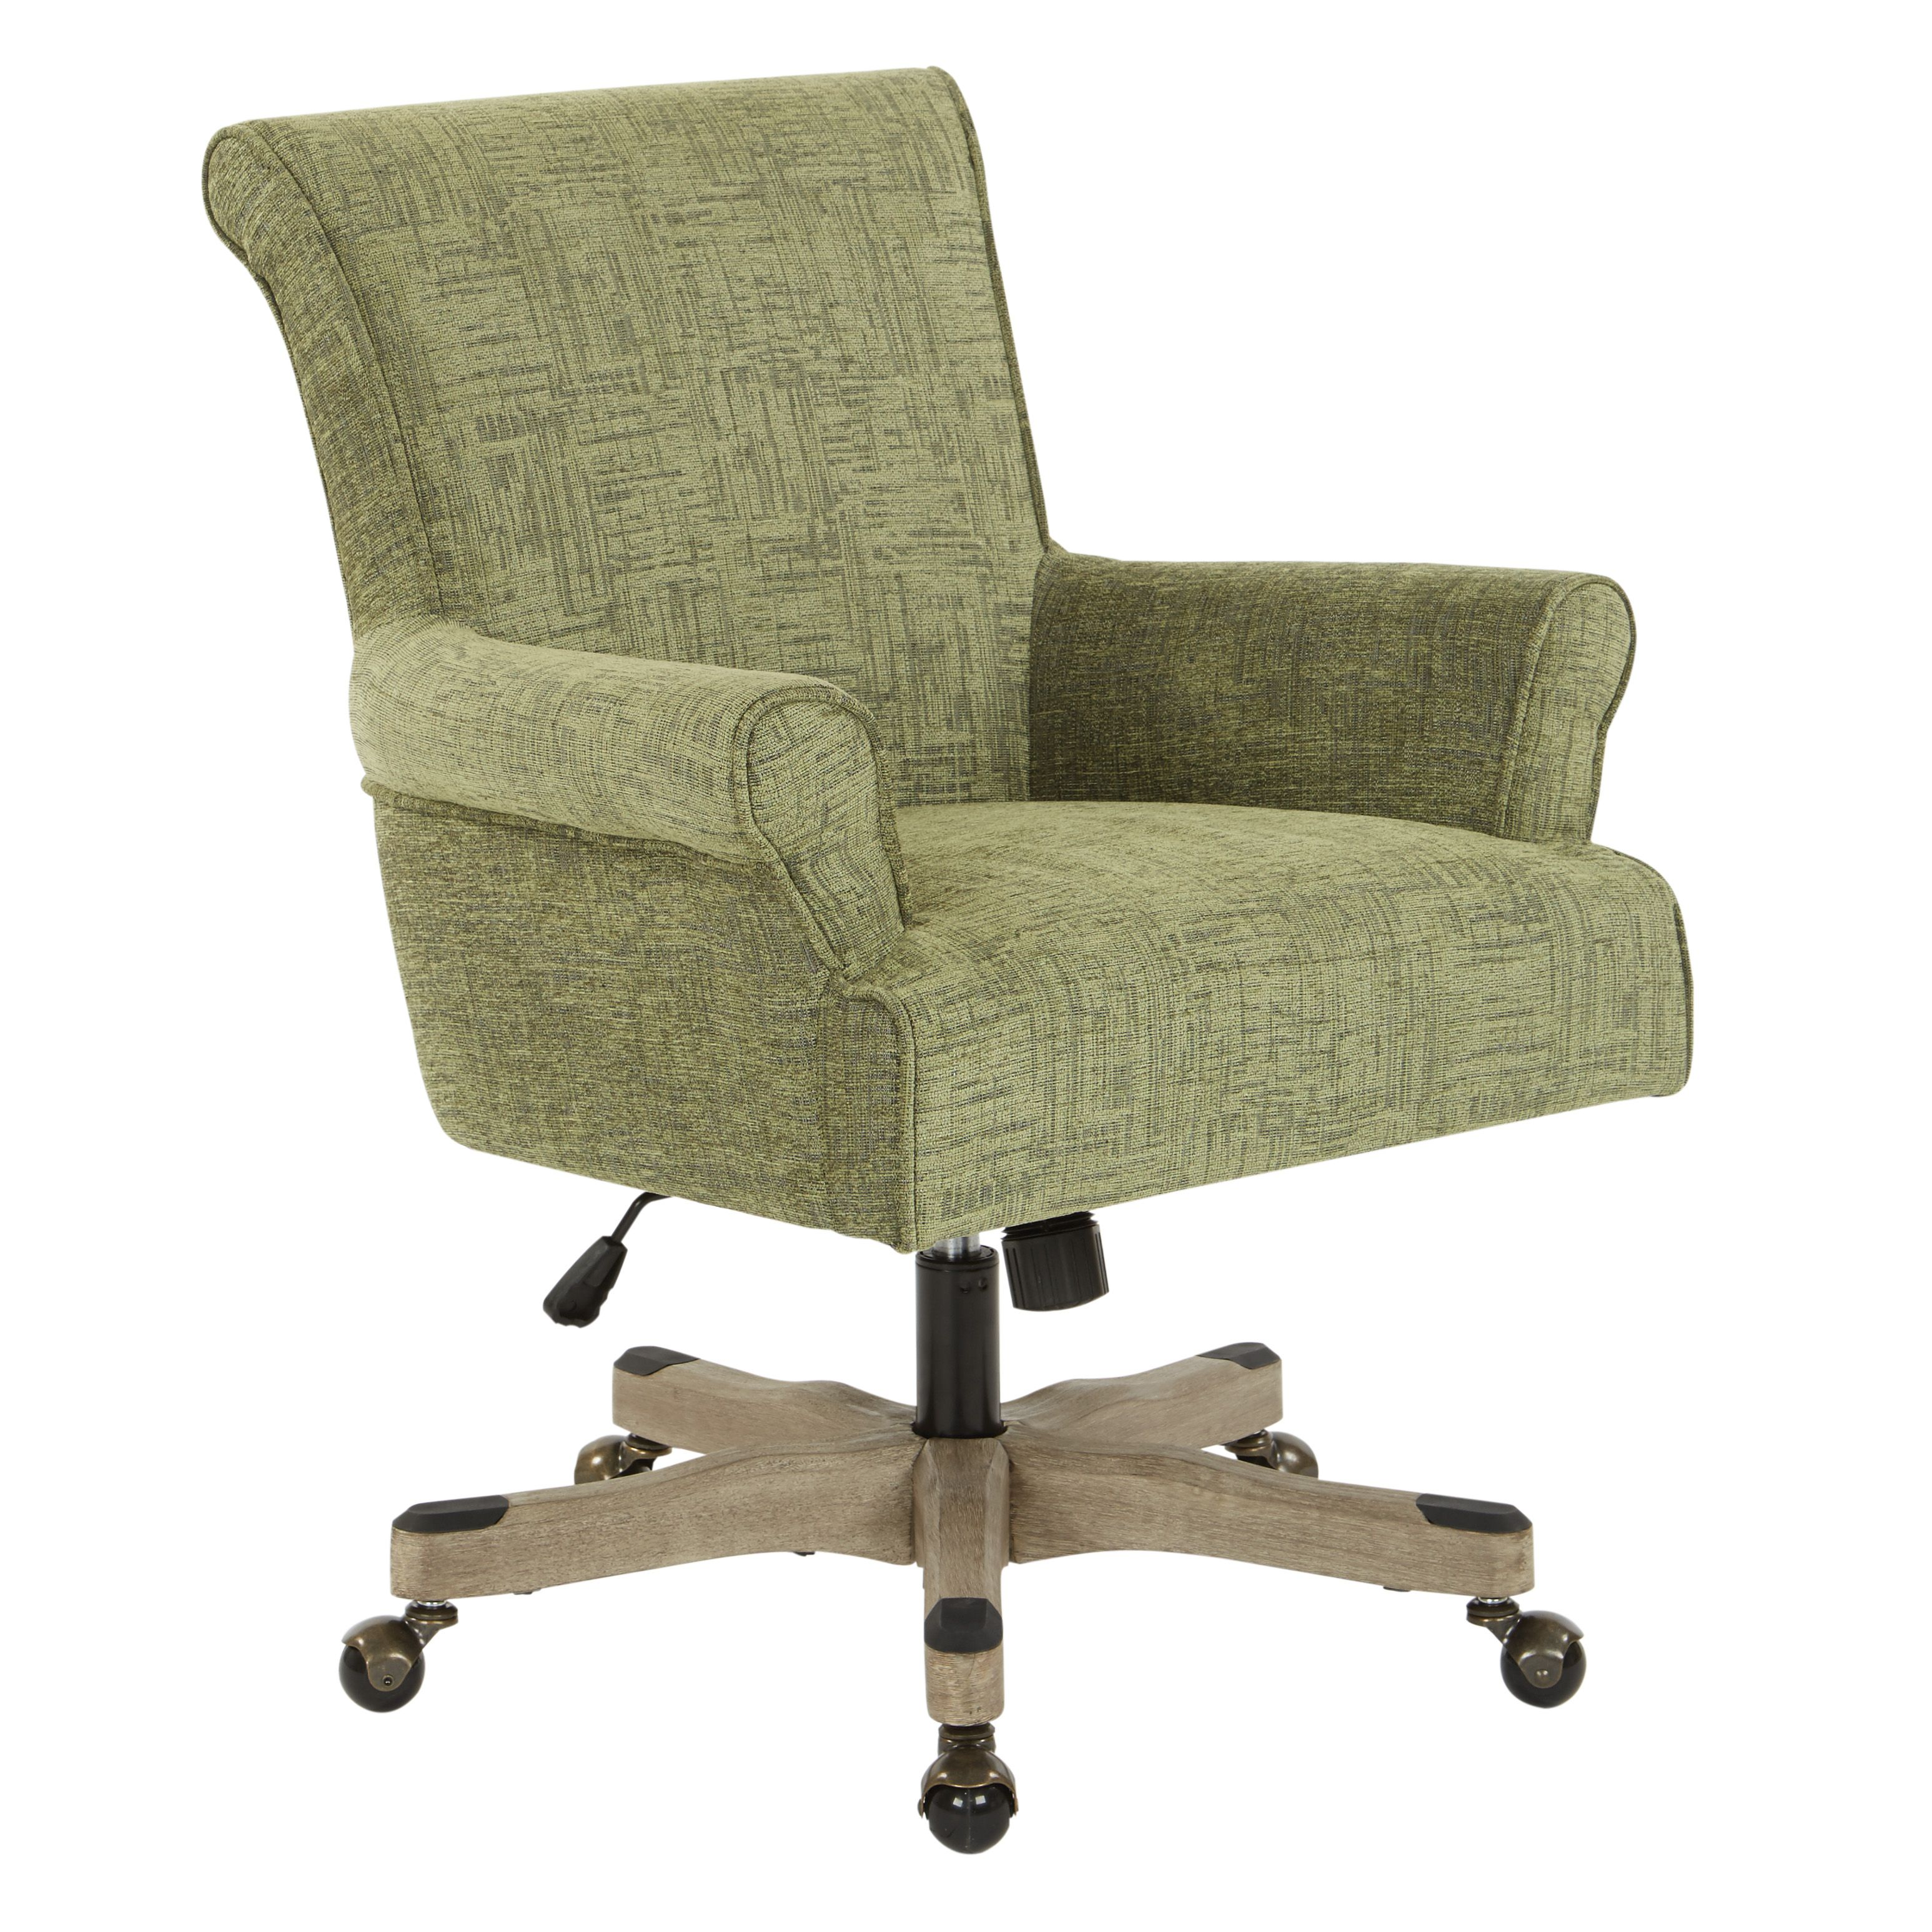 Megan Office Chair Walmart Com In 2020 Osp Home Furnishings Office Chair Contemporary Desk